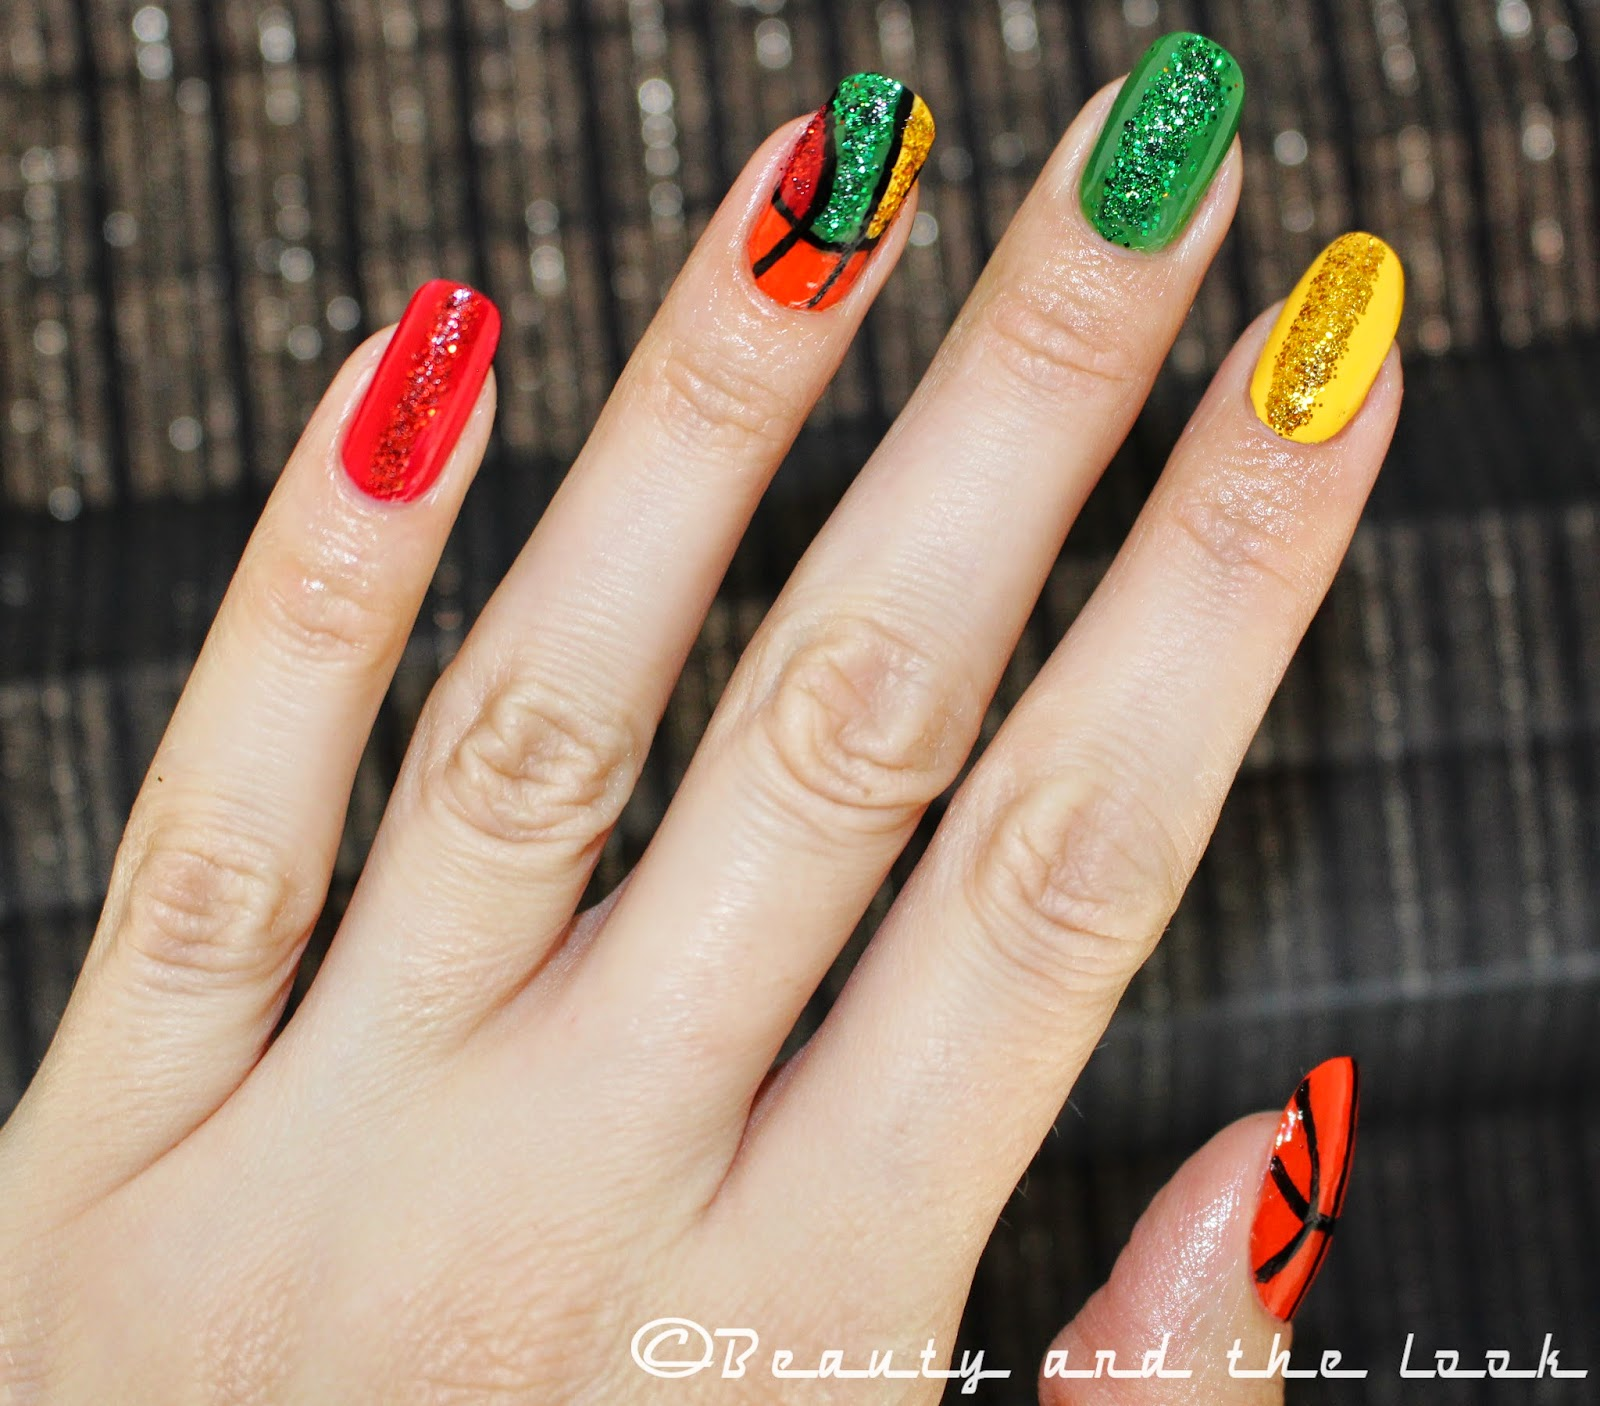 Lithuanian basketball nails beautythelook for this lithuanian basketball nail art i used the colors of the lithuanian flag yellow green and red for my ring finger nail i created an image of a prinsesfo Choice Image